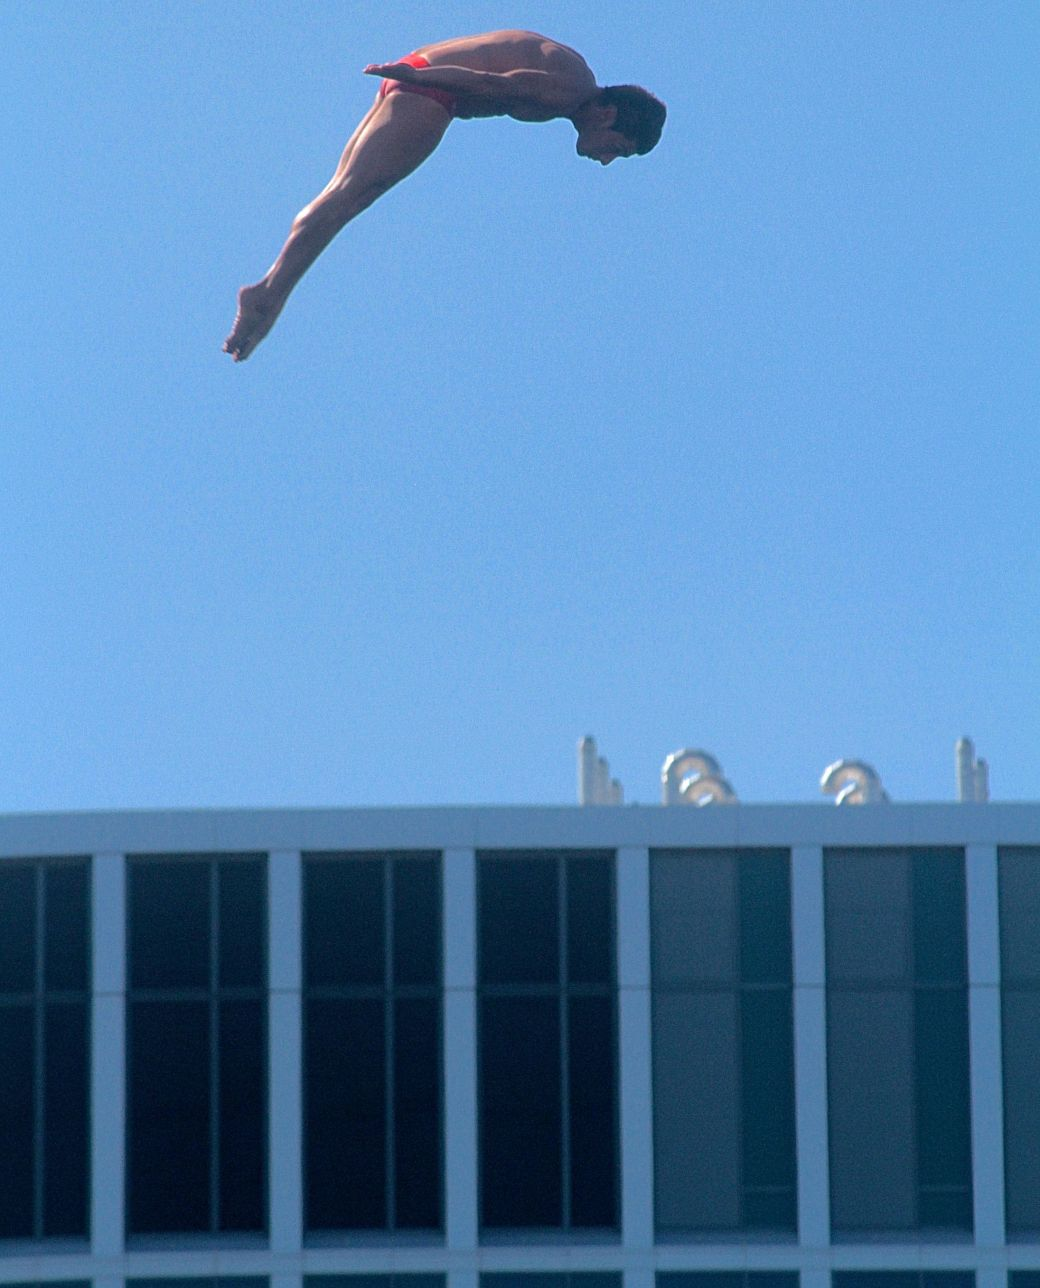 boston institute of contemporary art diving competition august 25 2013 72